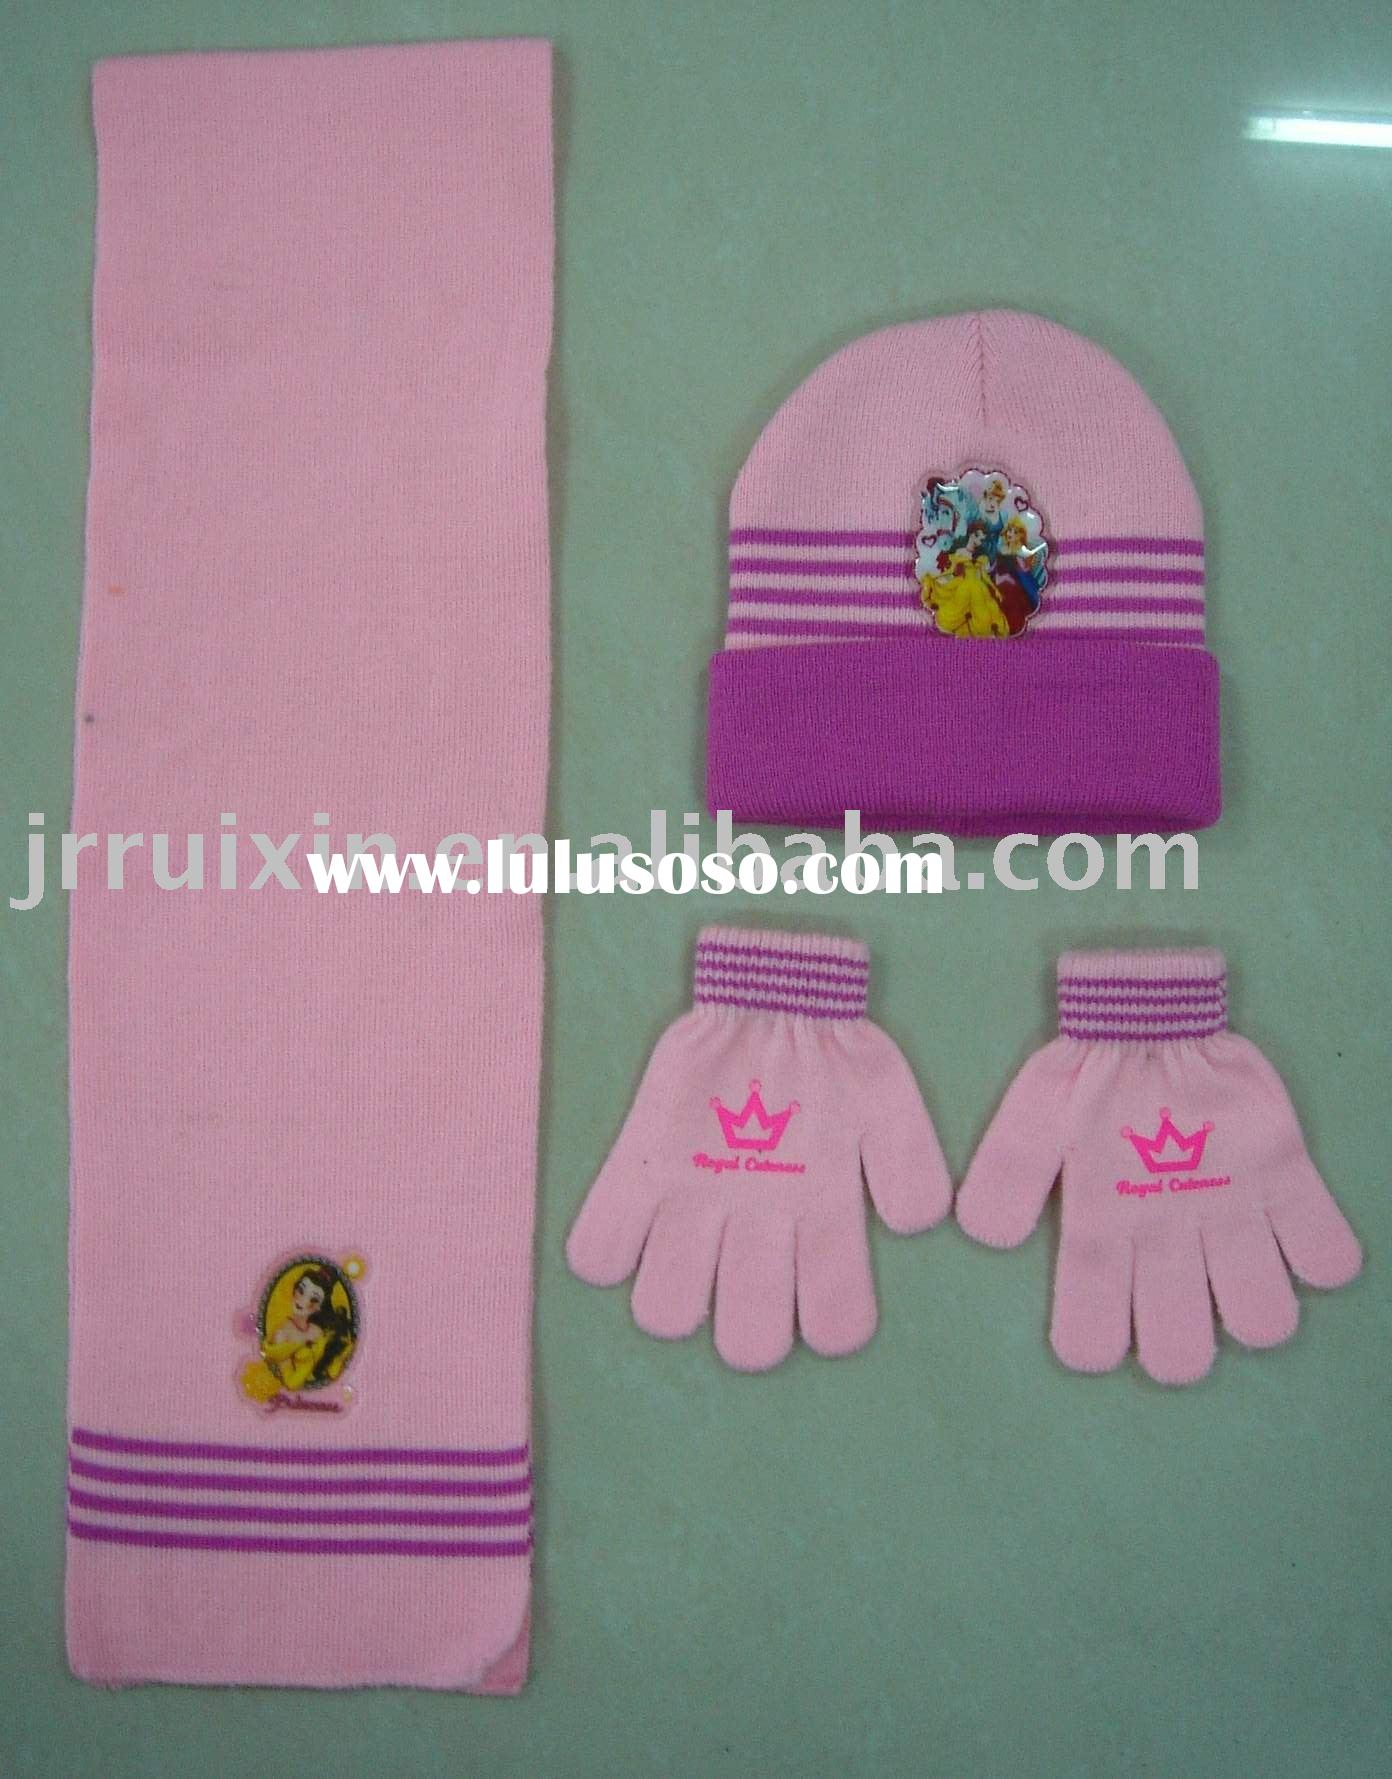 Knitted hat, scarf and gloves for kids